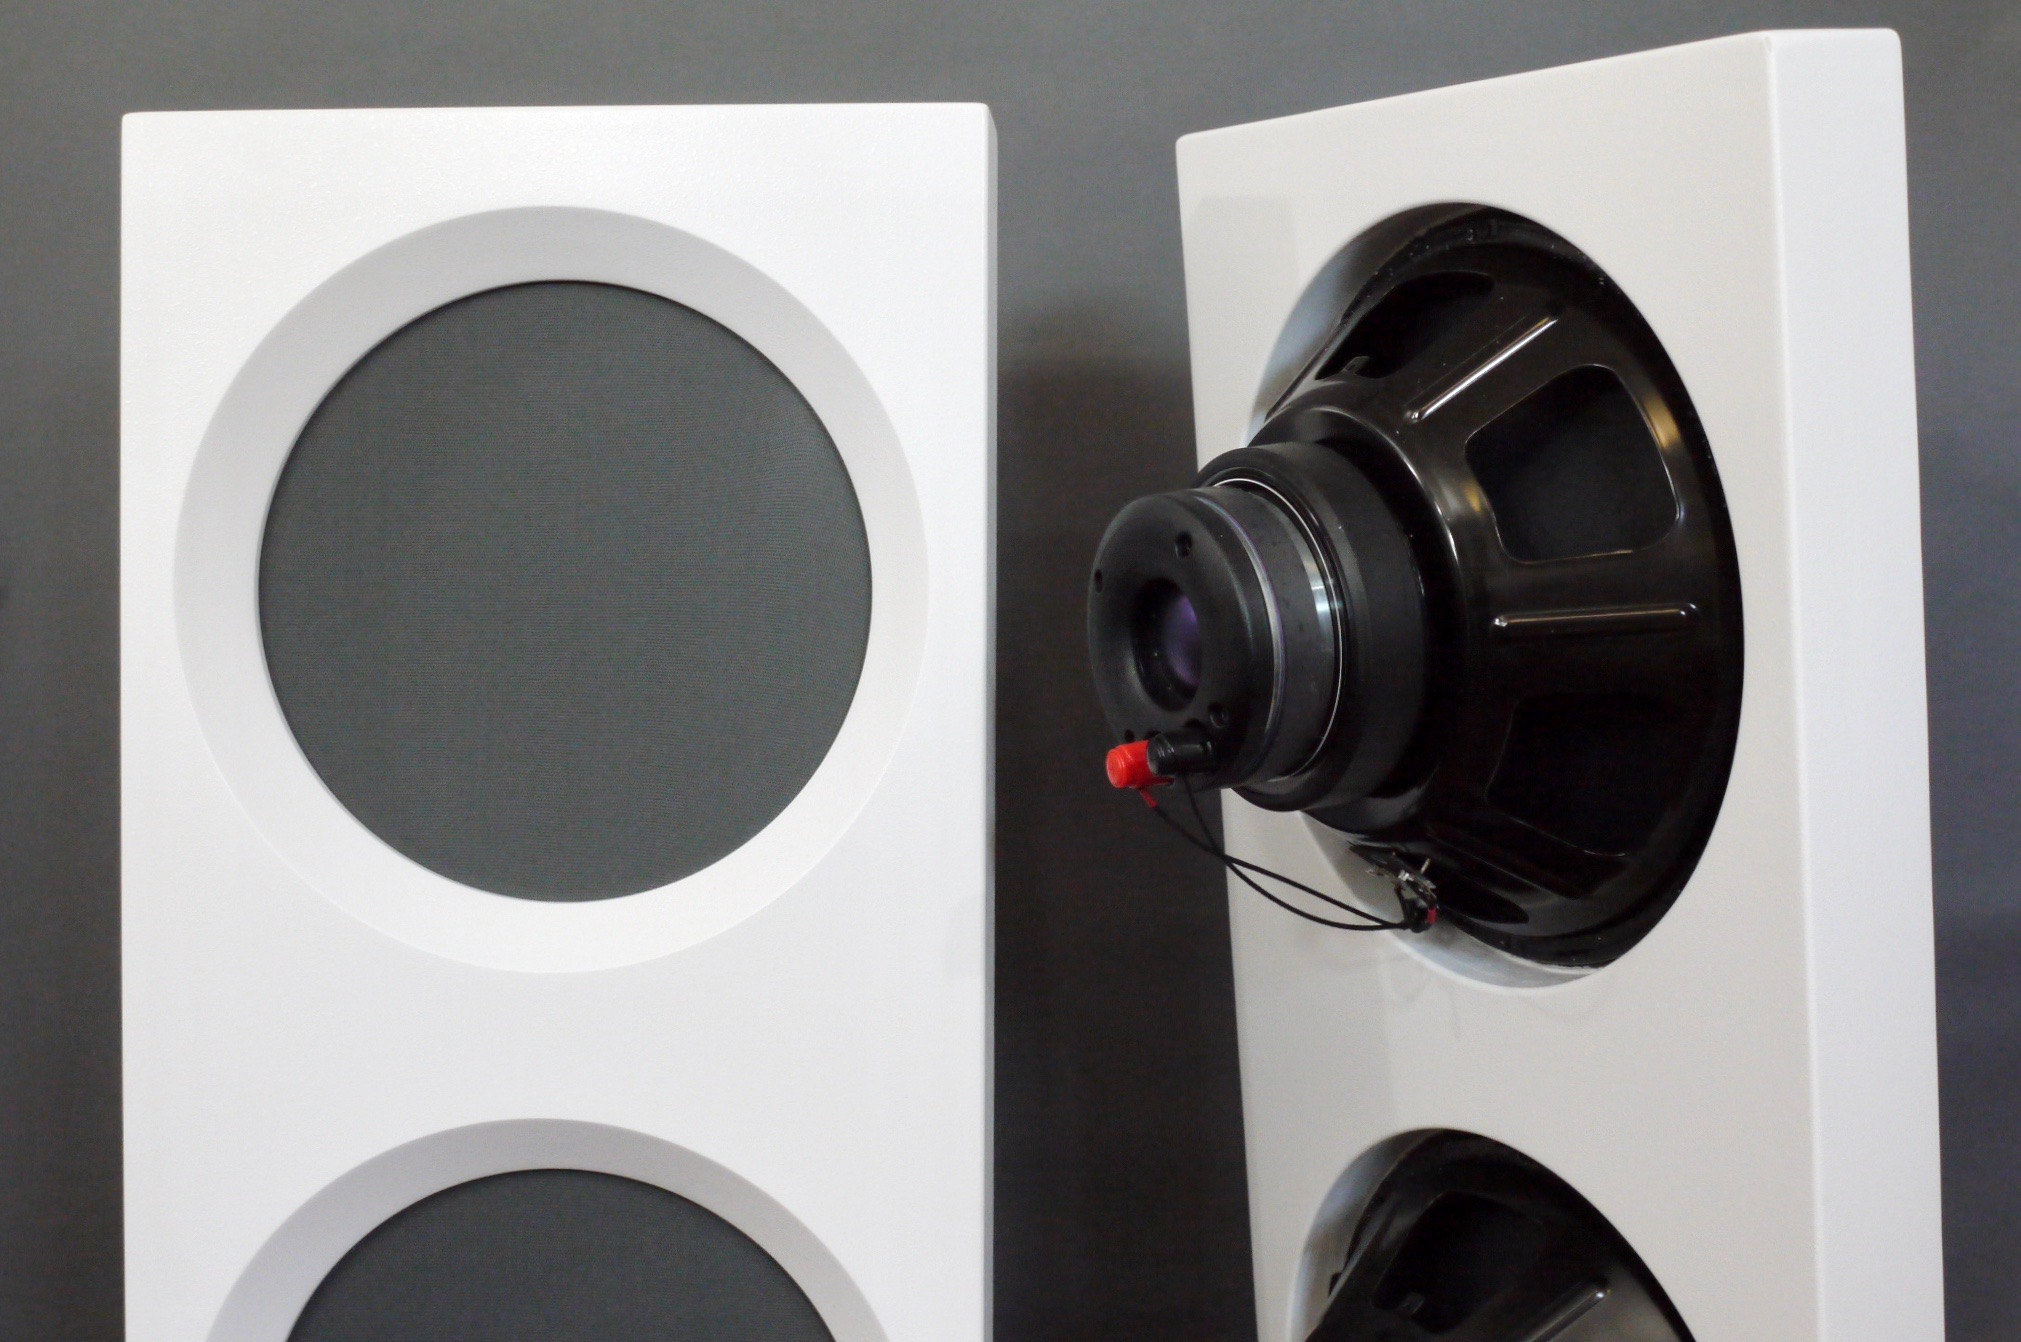 Spatial Audio Hologram M4 Triode Master Loudspeakers: Small Space, Big Sound!